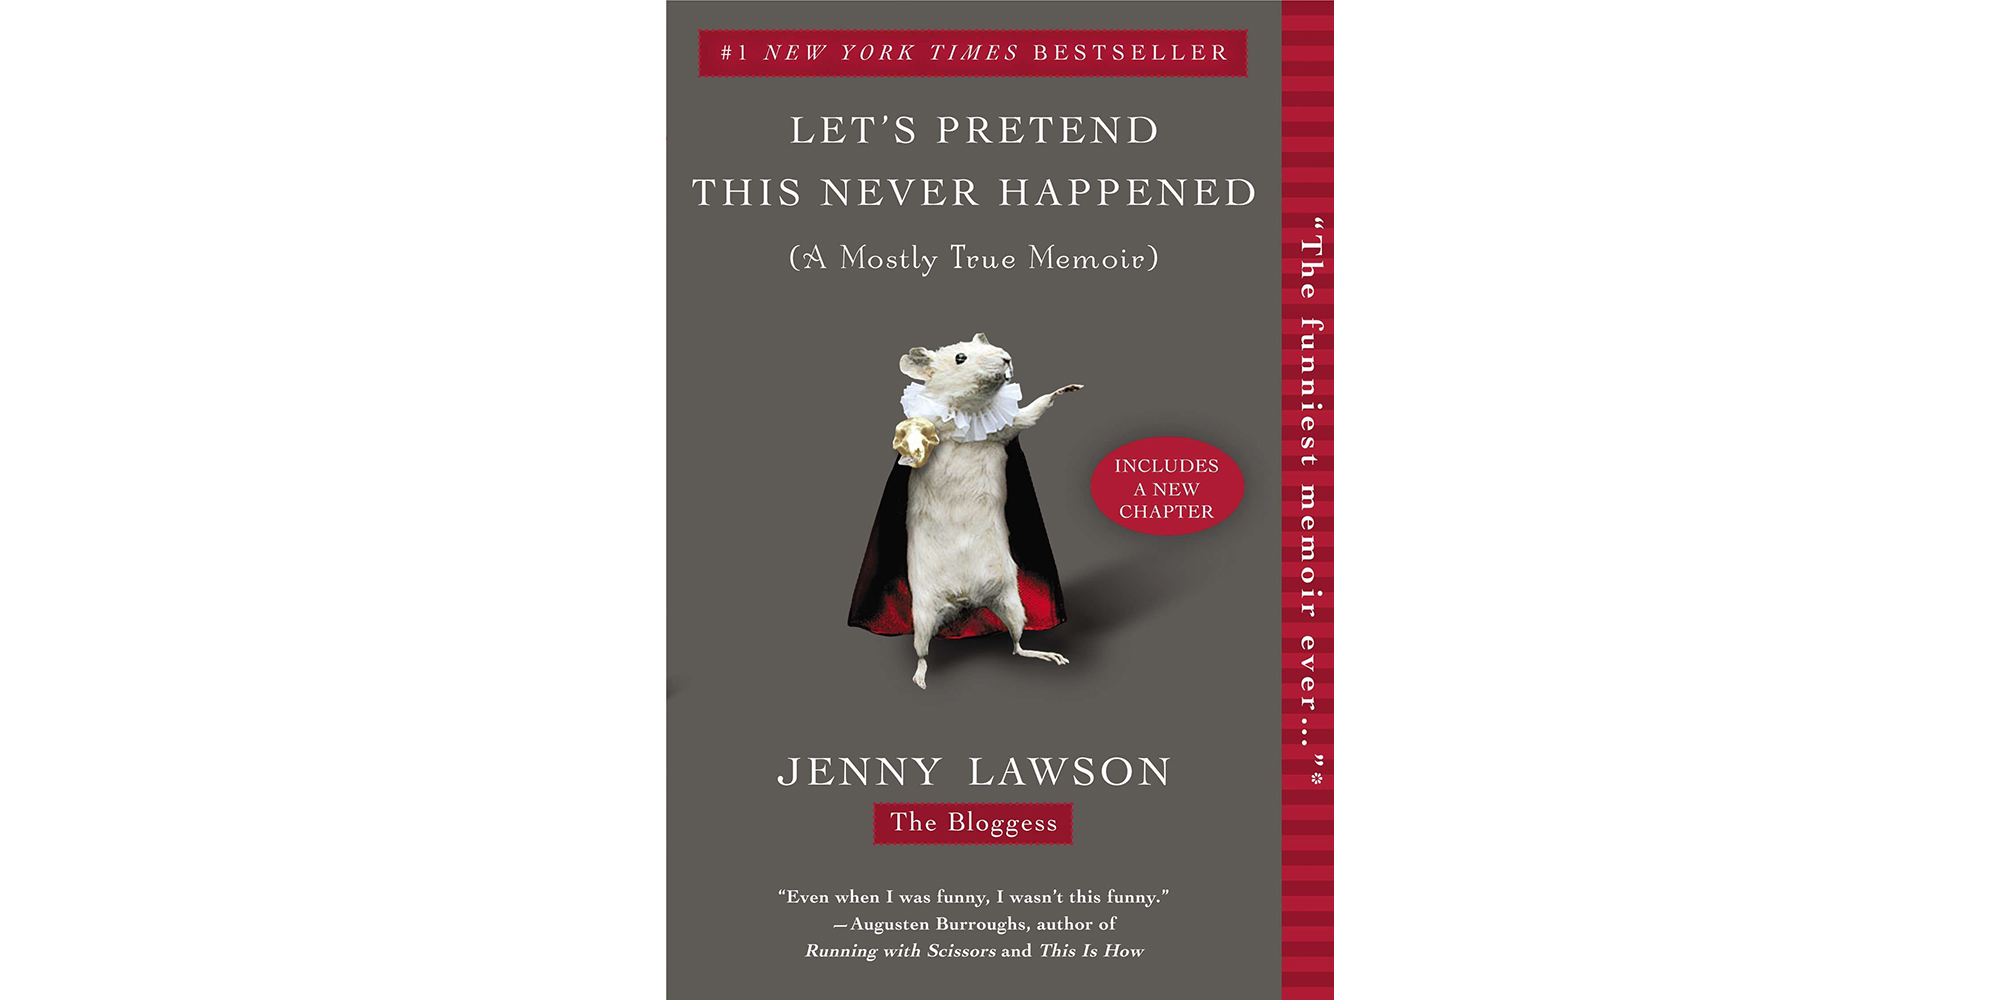 Cover of Let's Pretend This Never Happened, by Jenny Lawson